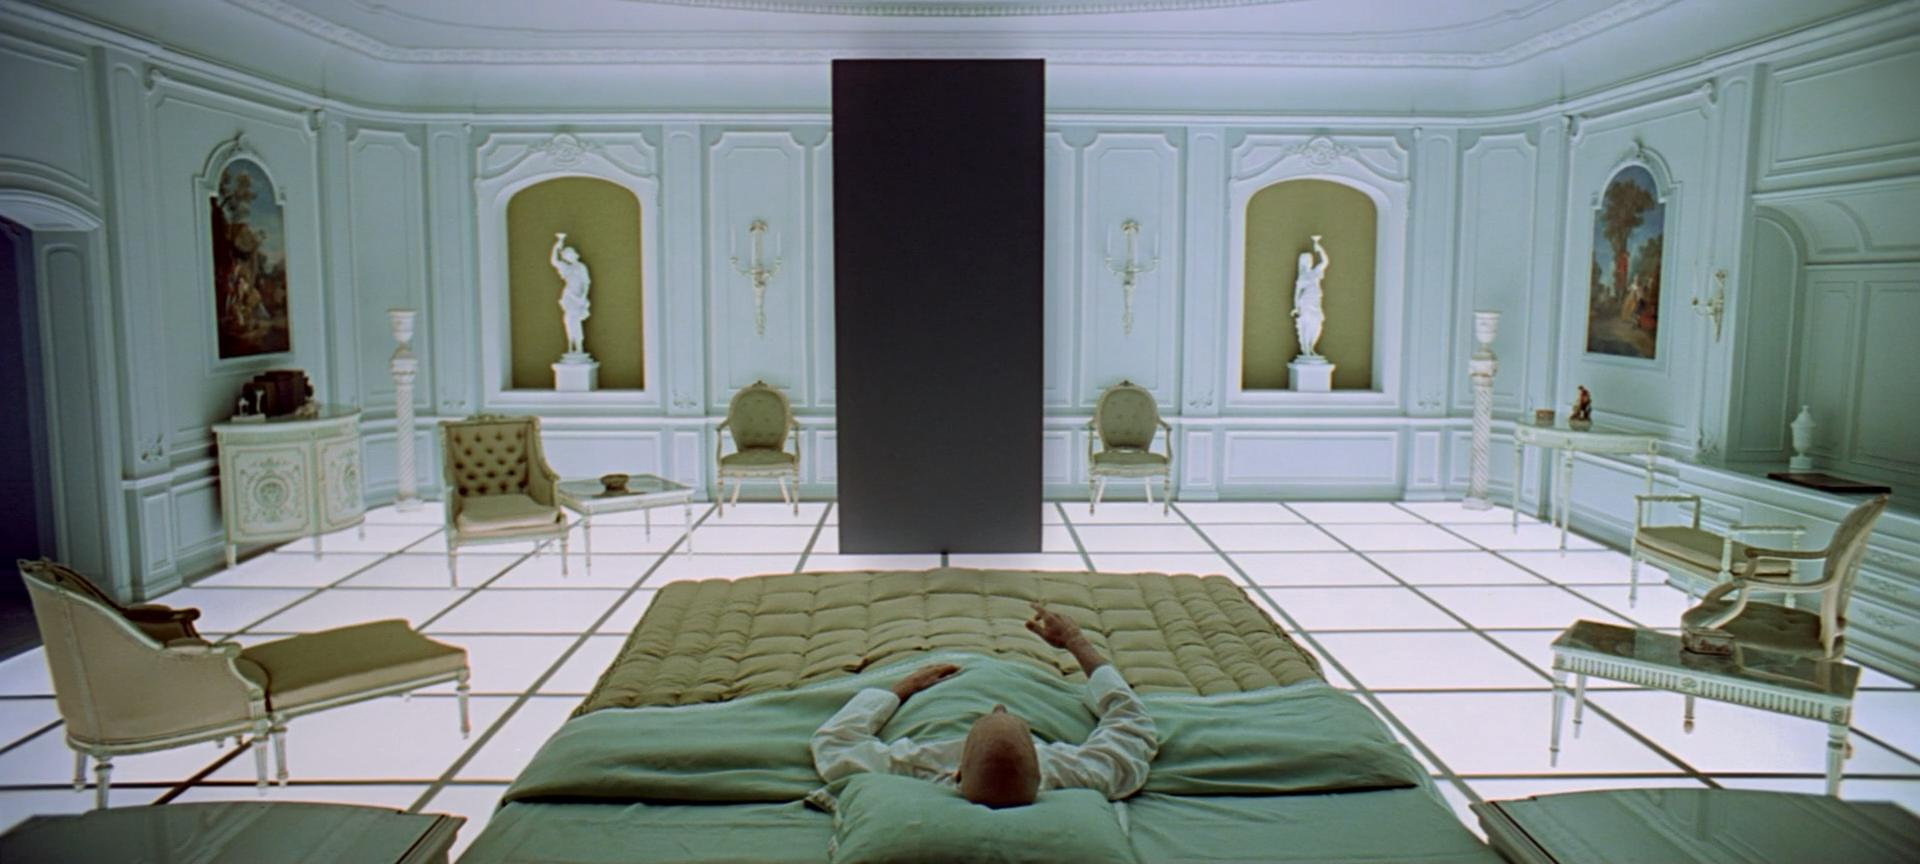 2001.A.Space.Odyssey.1968.monolithe